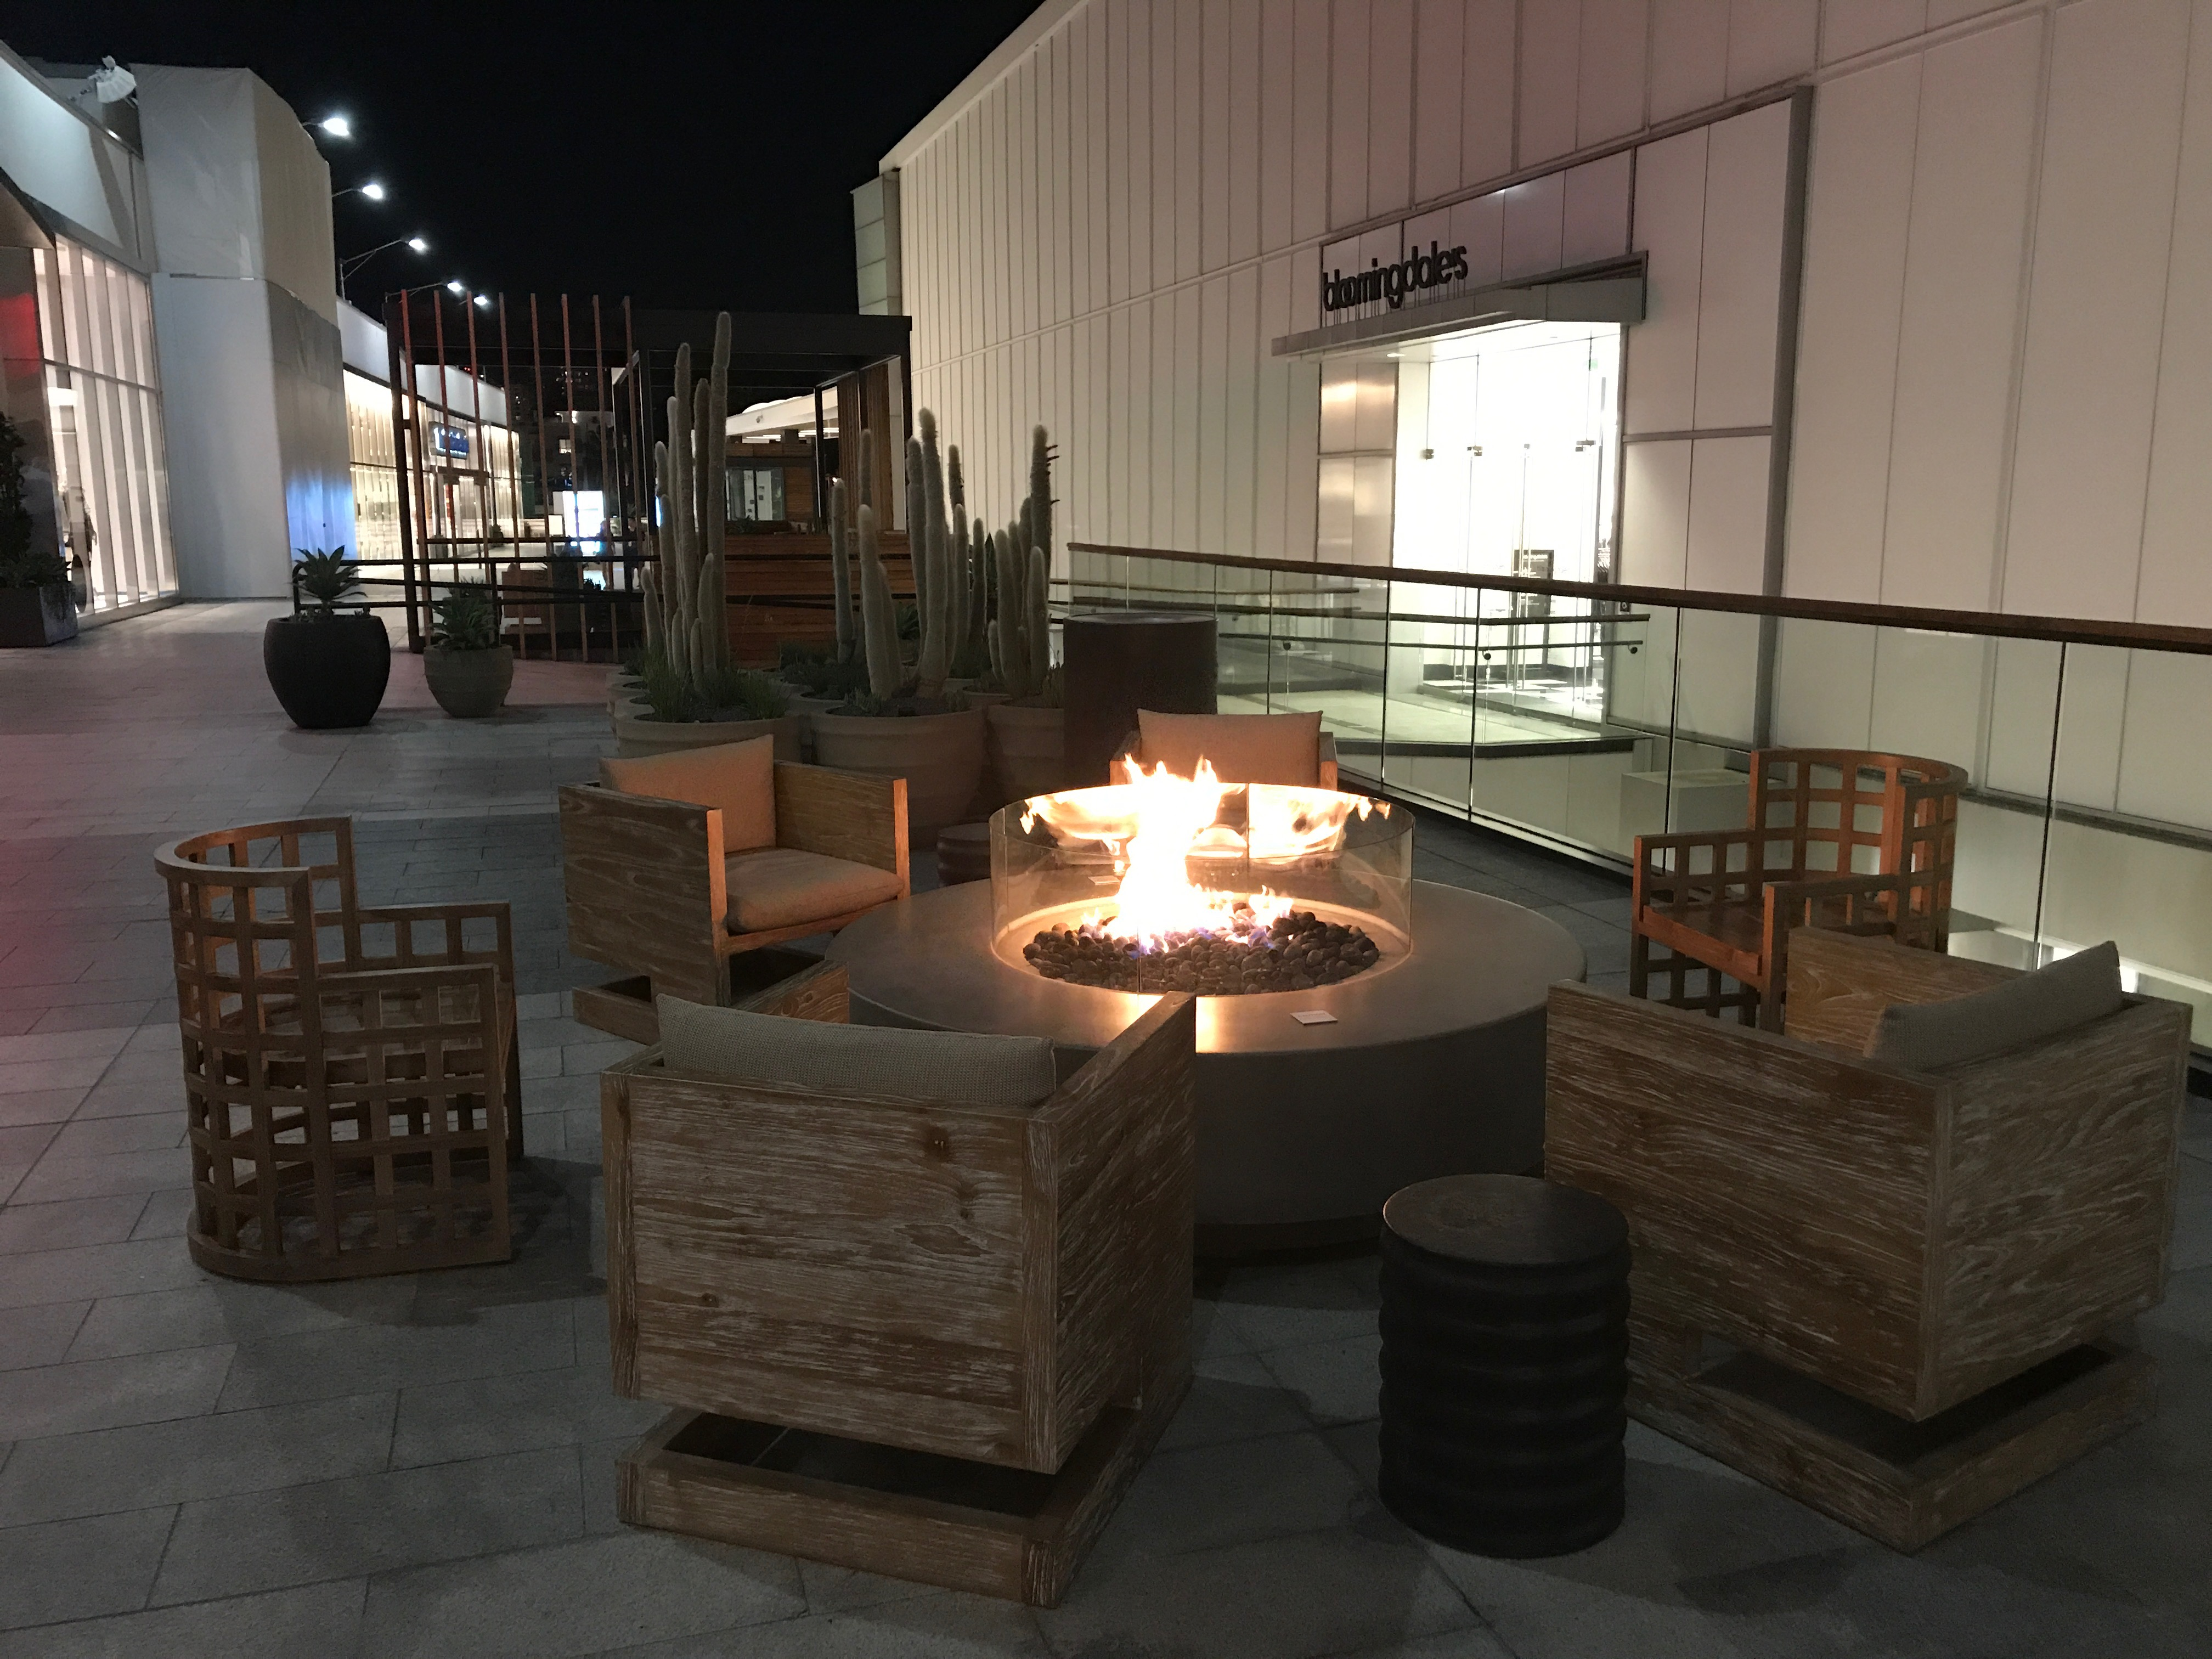 Lounging areas including a fire pit are scattered throughout the mall.